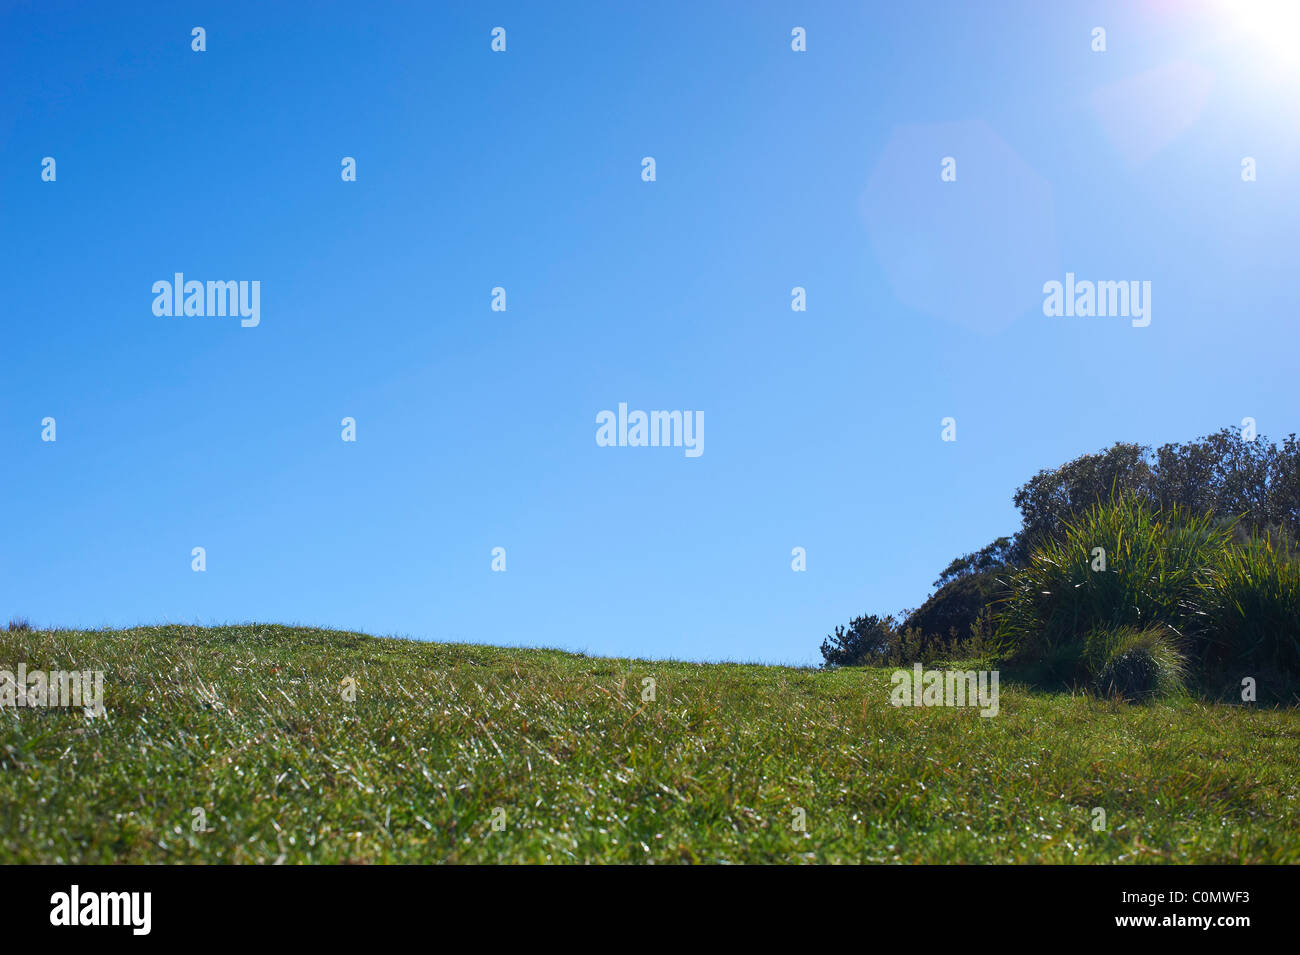 Green grassy hill and blue sky - Stock Image